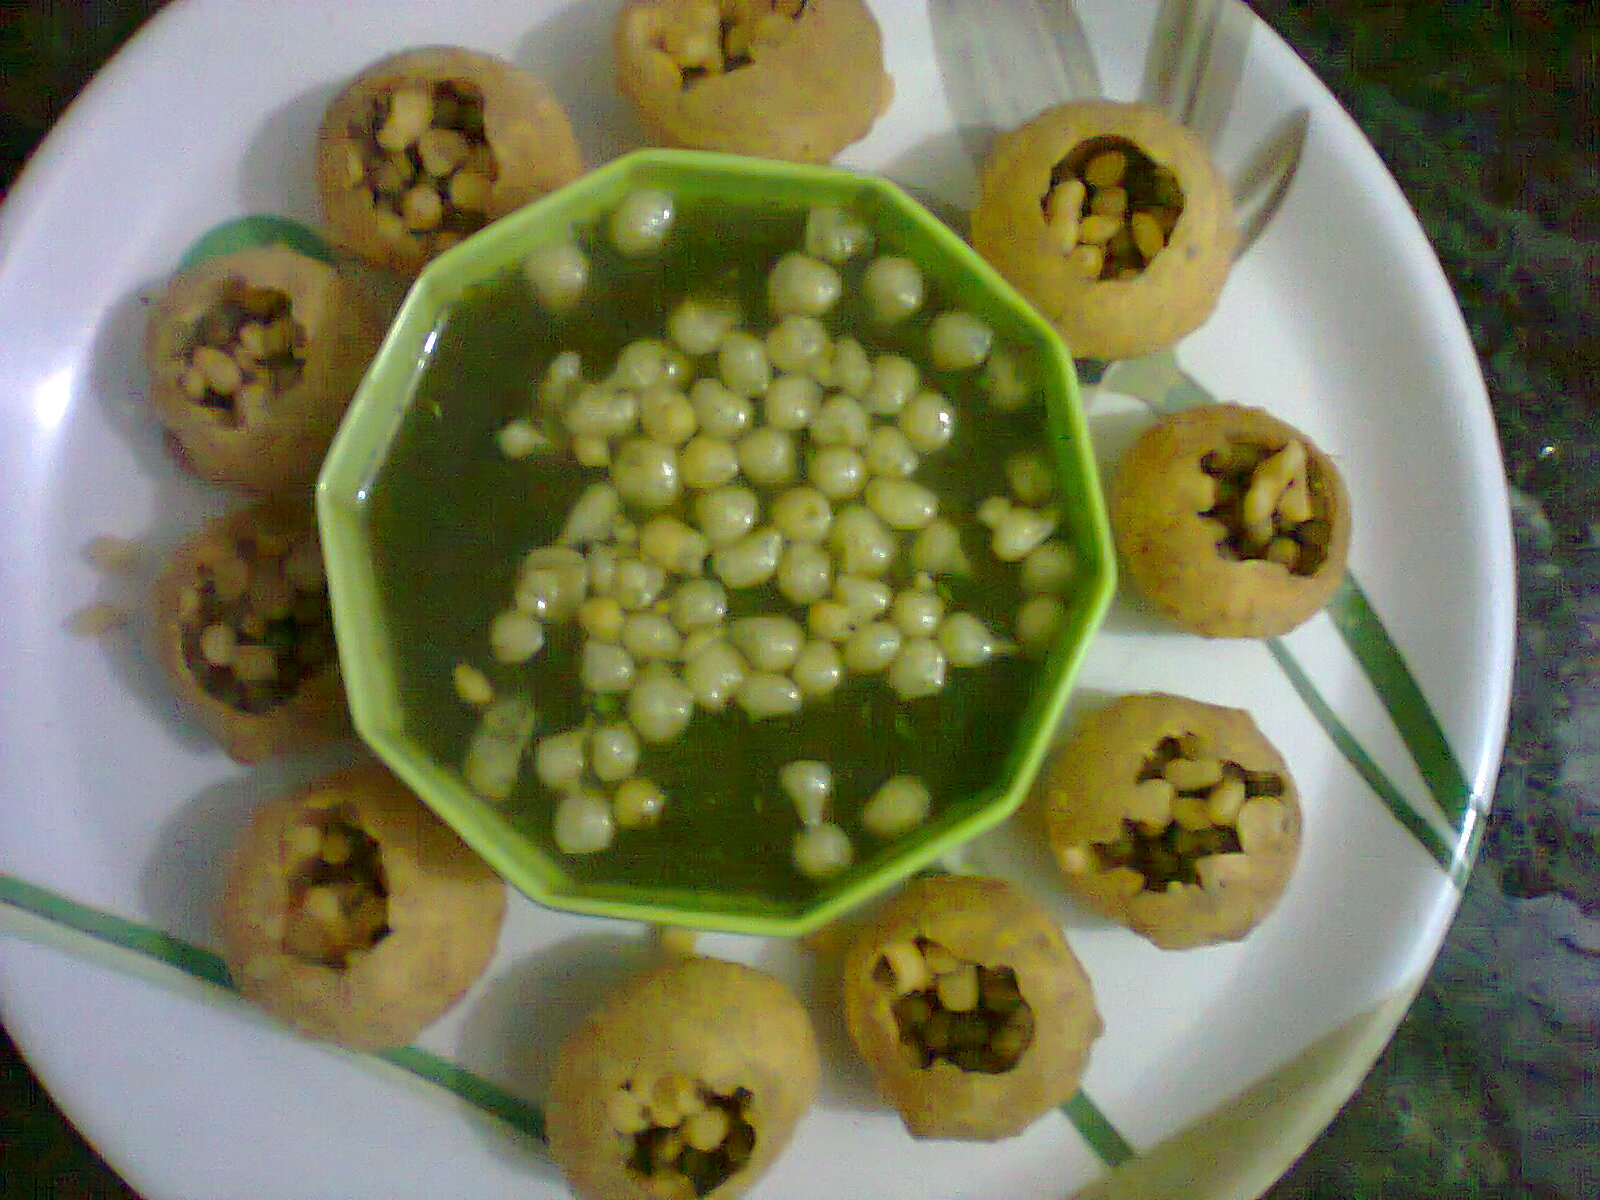 Vegetarianrasoi kachhe aamraw mango ka paani puri ka paani ki recipe this paani beats heat and very healthy and digestible easy to make and tasty its taste is sour sweet salty and tangy i have made the new recipe forumfinder Choice Image